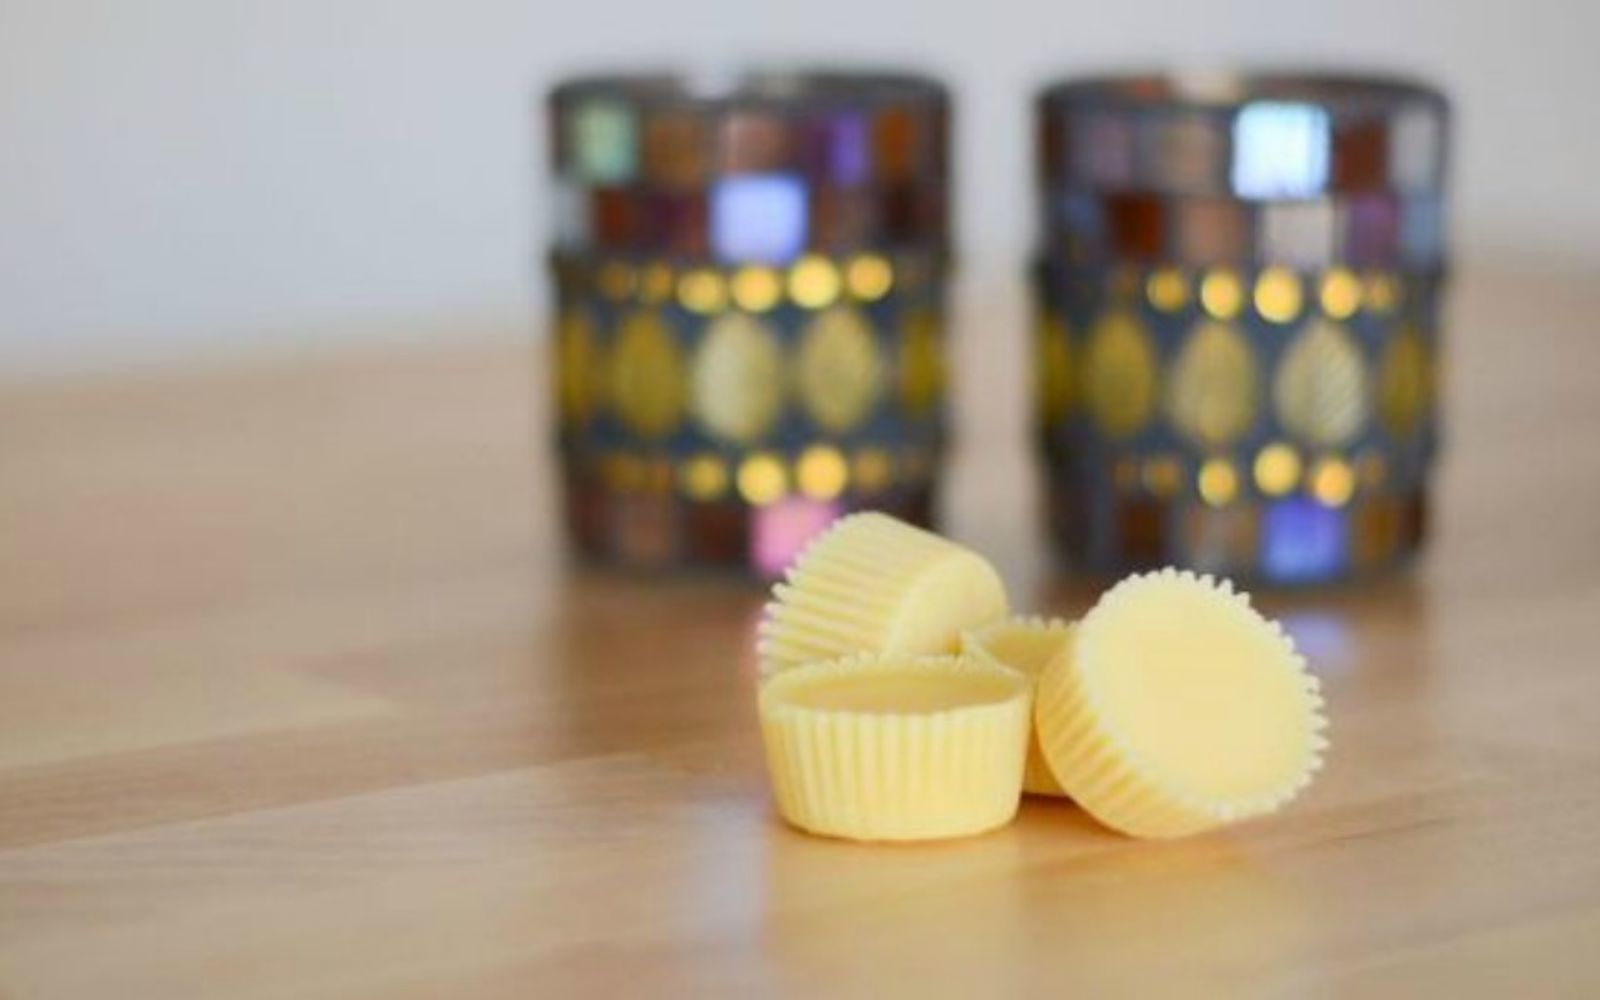 s 15 gorgeous homemade candle ideas you re going to want to try, These adorable buttercup candles